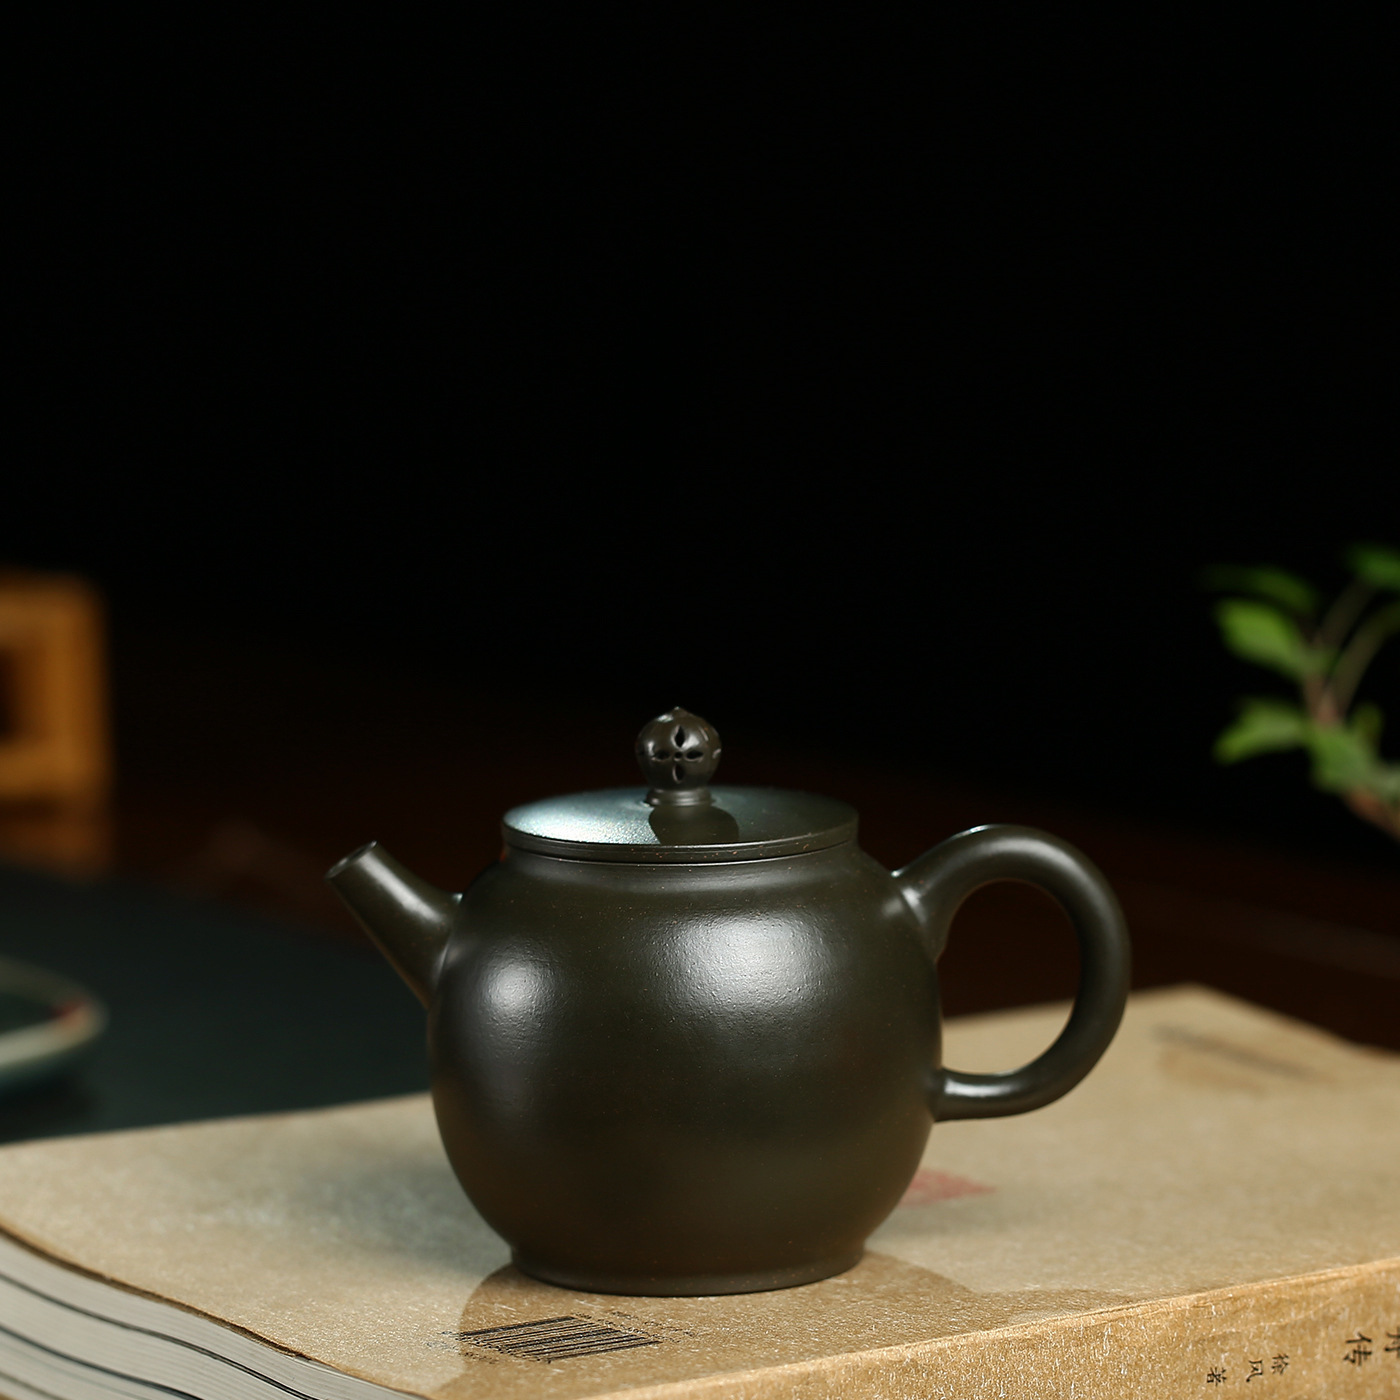 Enameled Pottery Teapot Famous Raw Ore Azure Mud Flat Cover Lotus Kettle Kung Fu Tea Have Household Infusion Of Tea KettleEnameled Pottery Teapot Famous Raw Ore Azure Mud Flat Cover Lotus Kettle Kung Fu Tea Have Household Infusion Of Tea Kettle